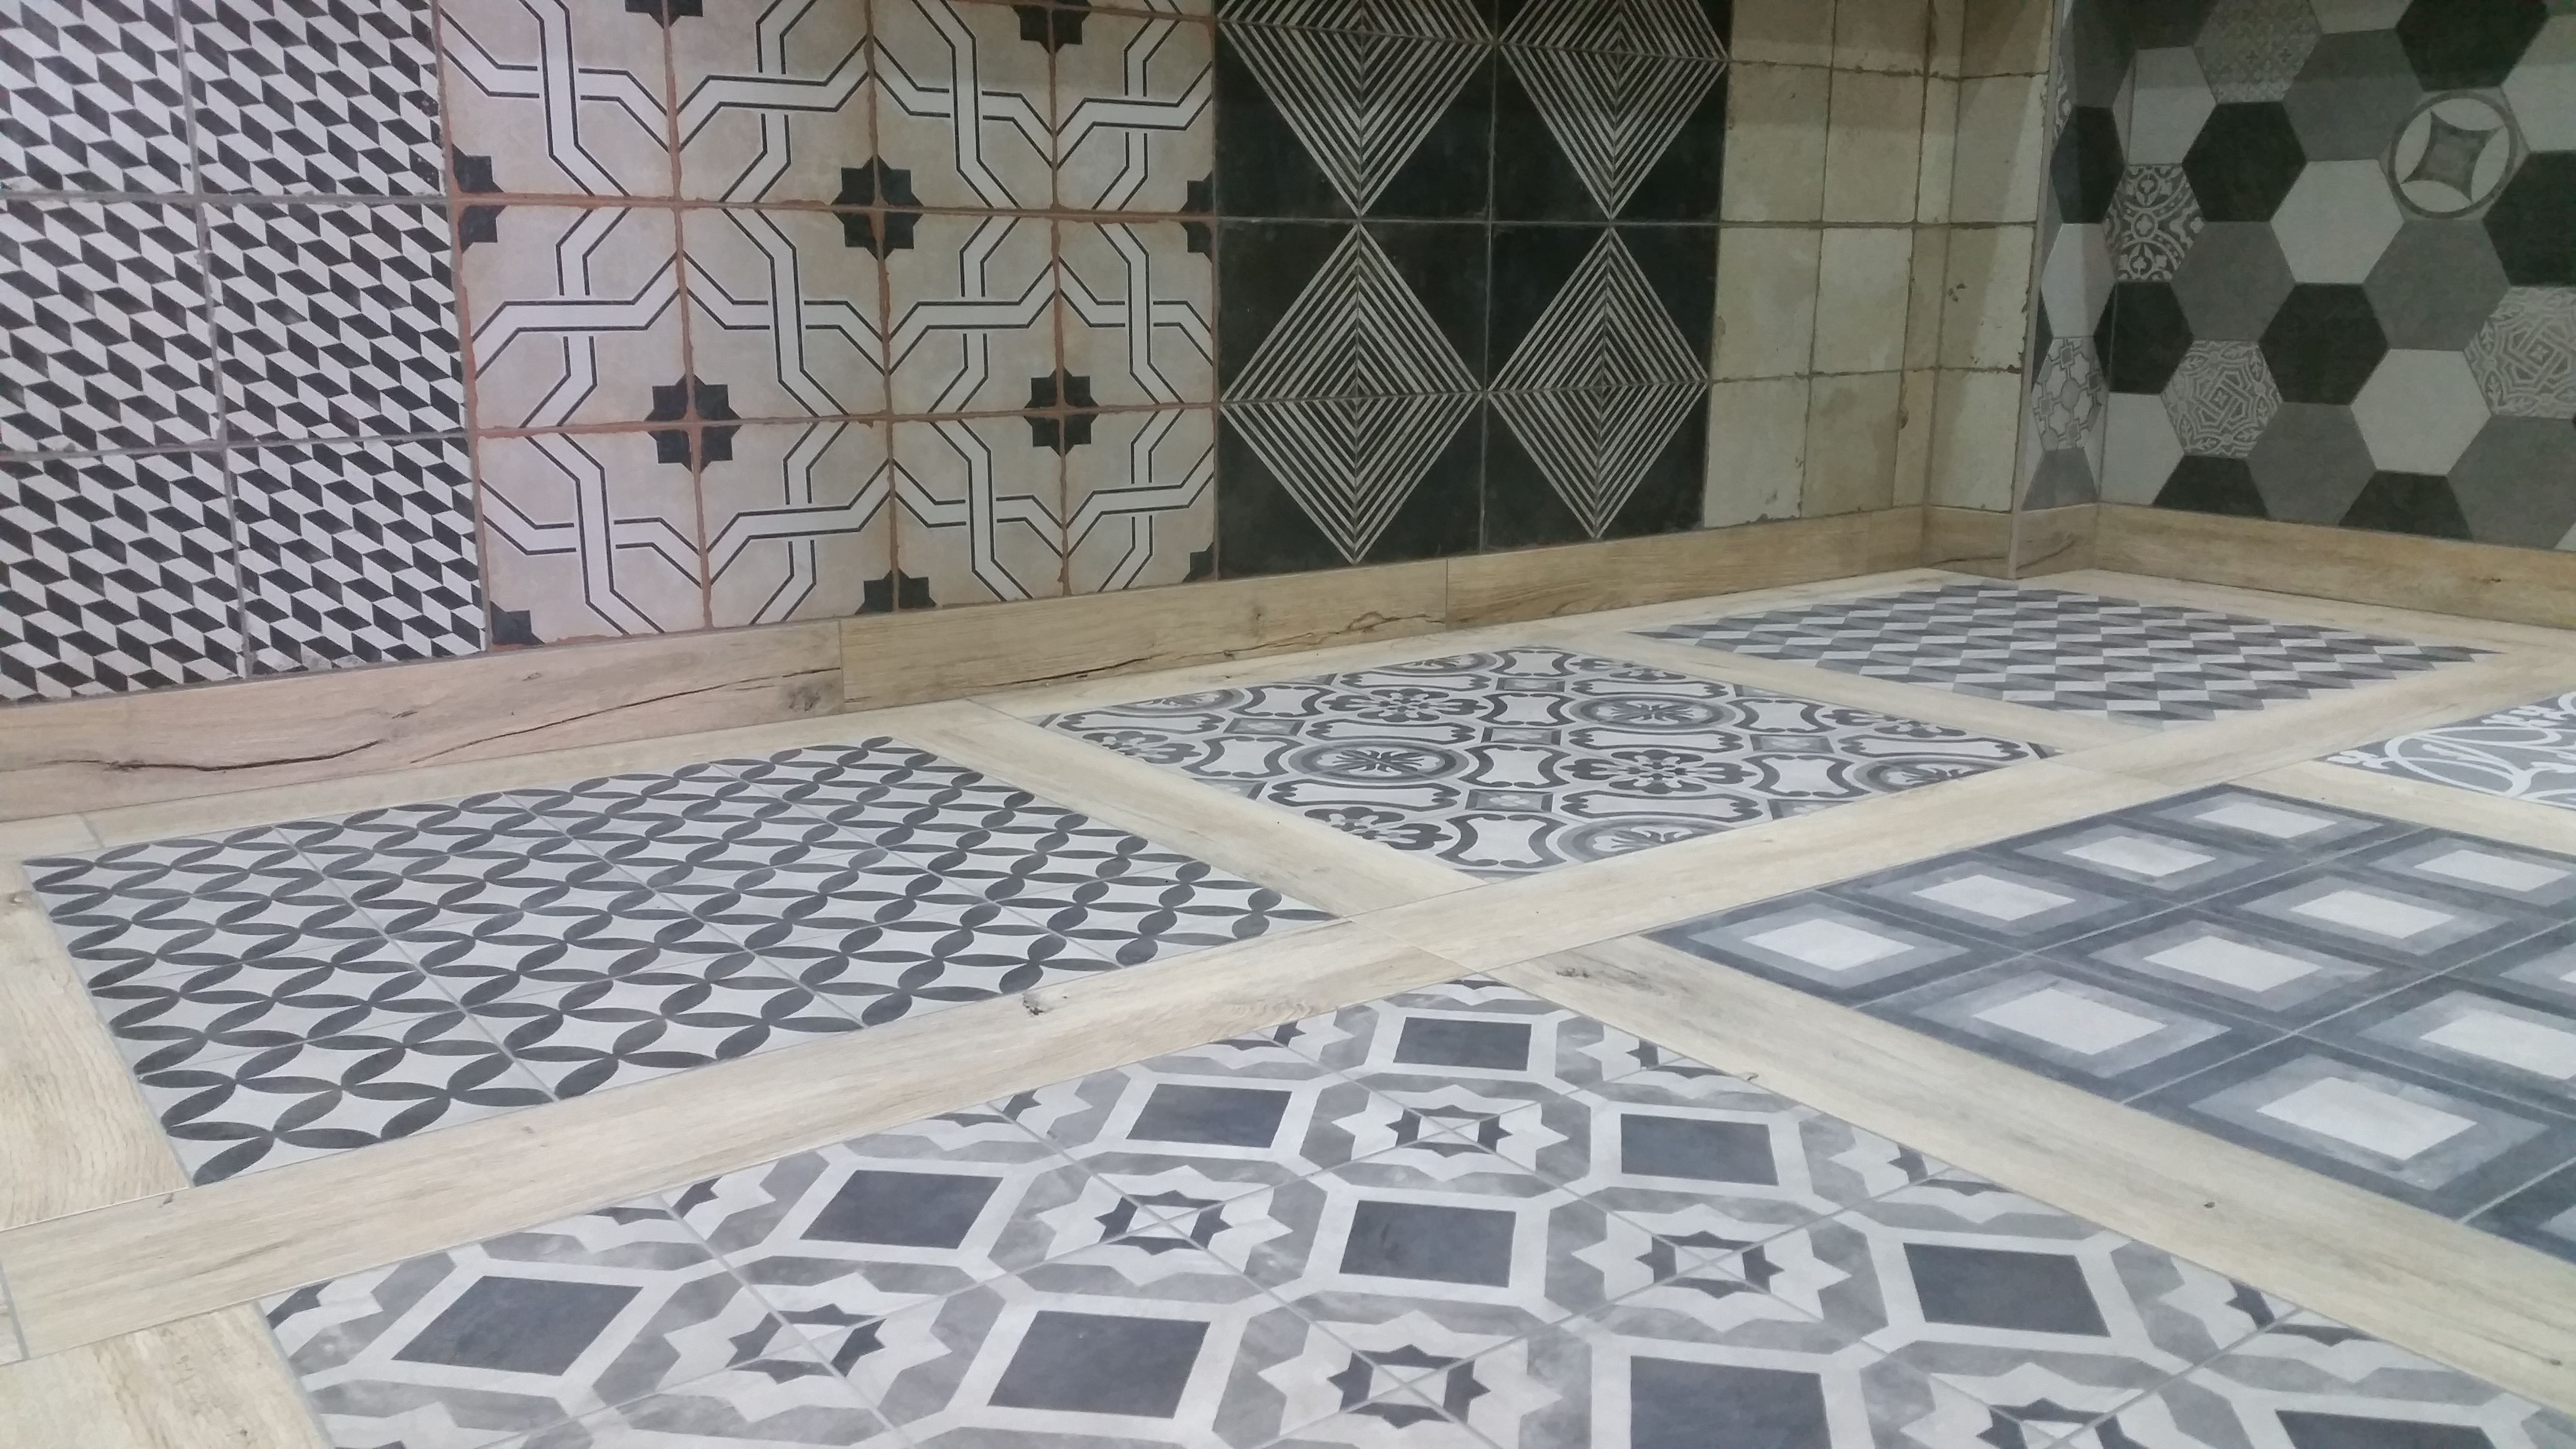 Discount Tile Depot display in York. | Patterns & Patchwork designs ...